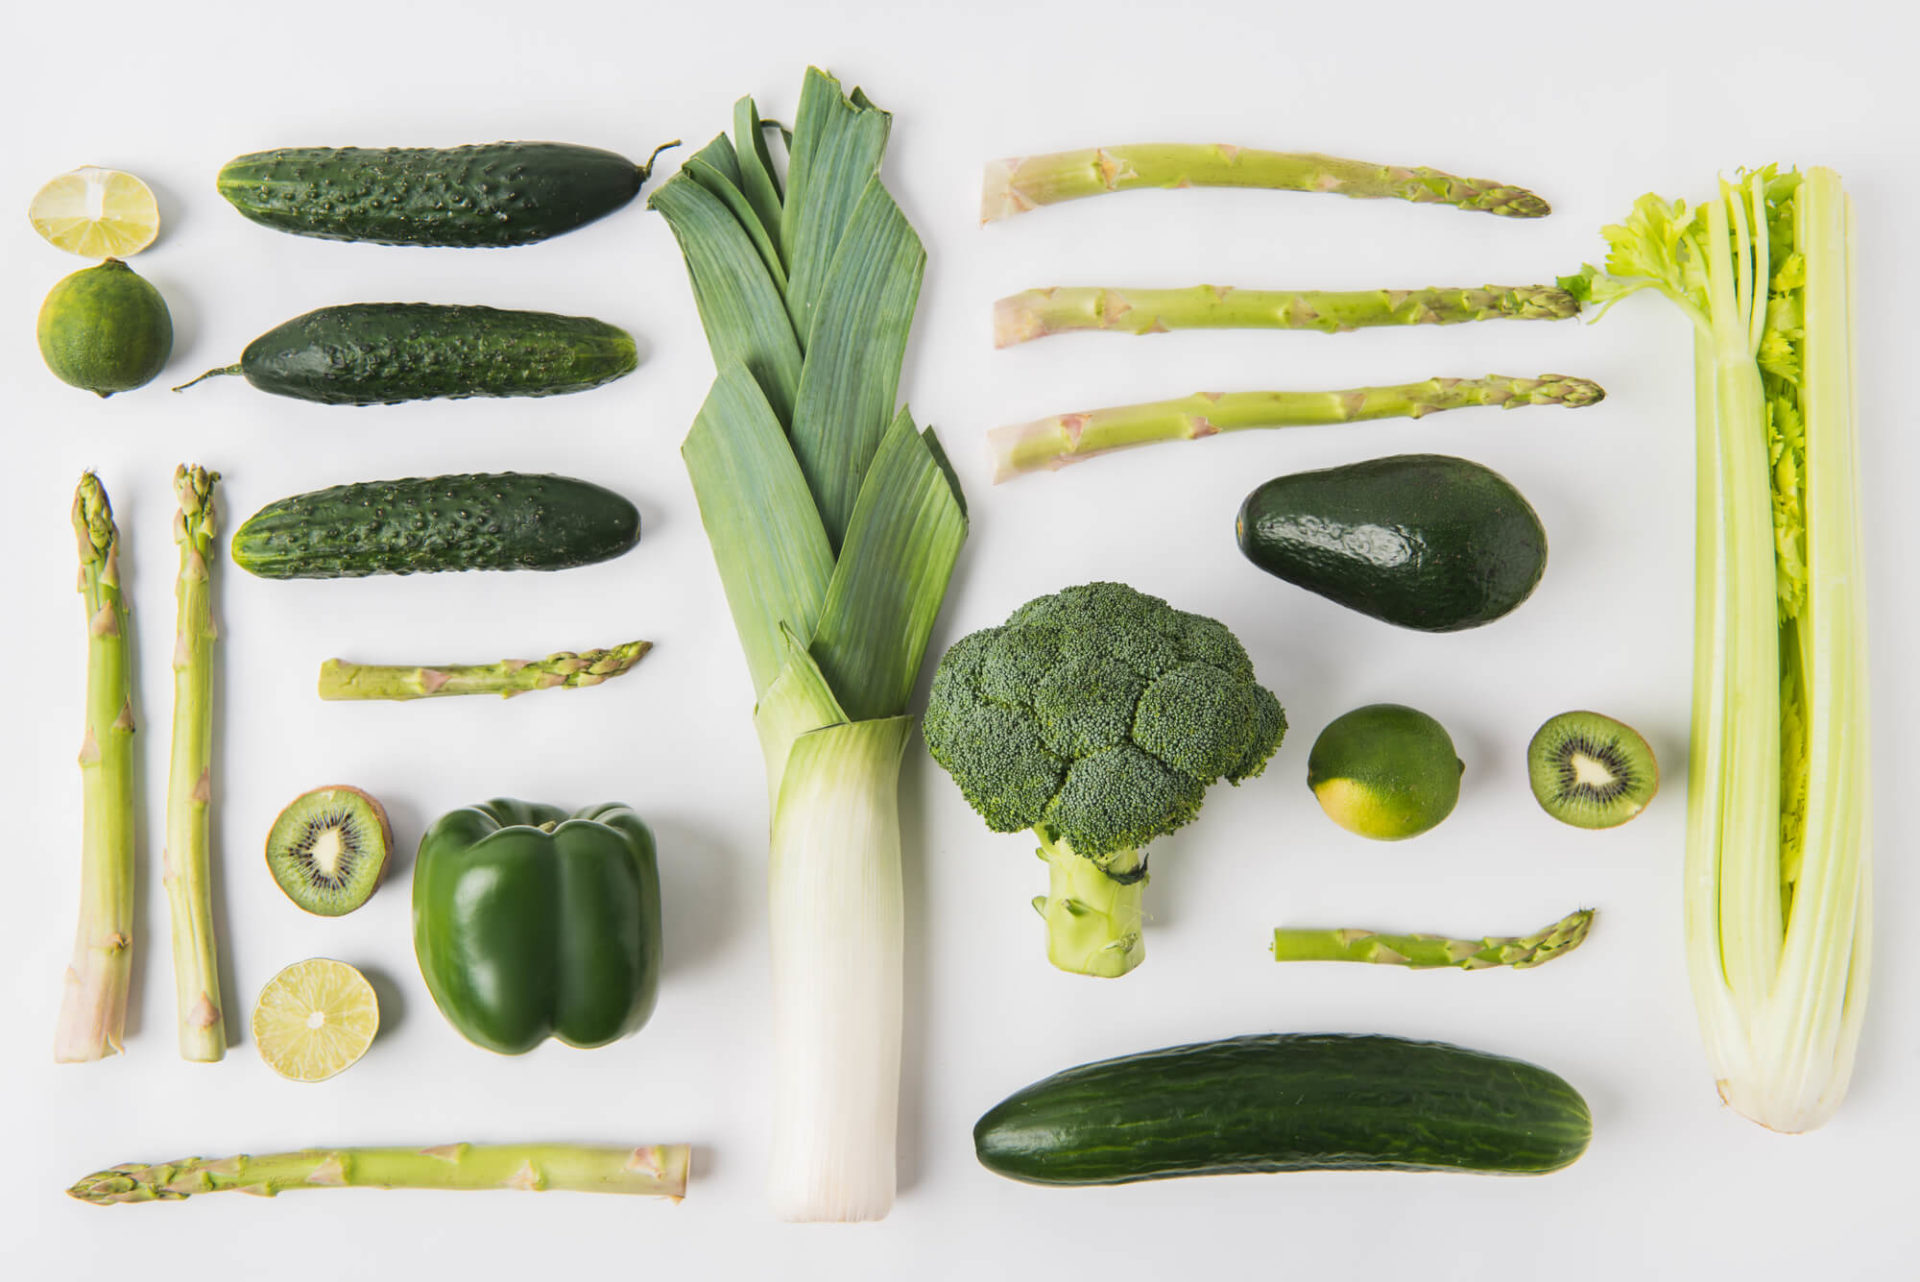 10 St. Patrick's Day Green Produce Picks with Great OptUP Scores